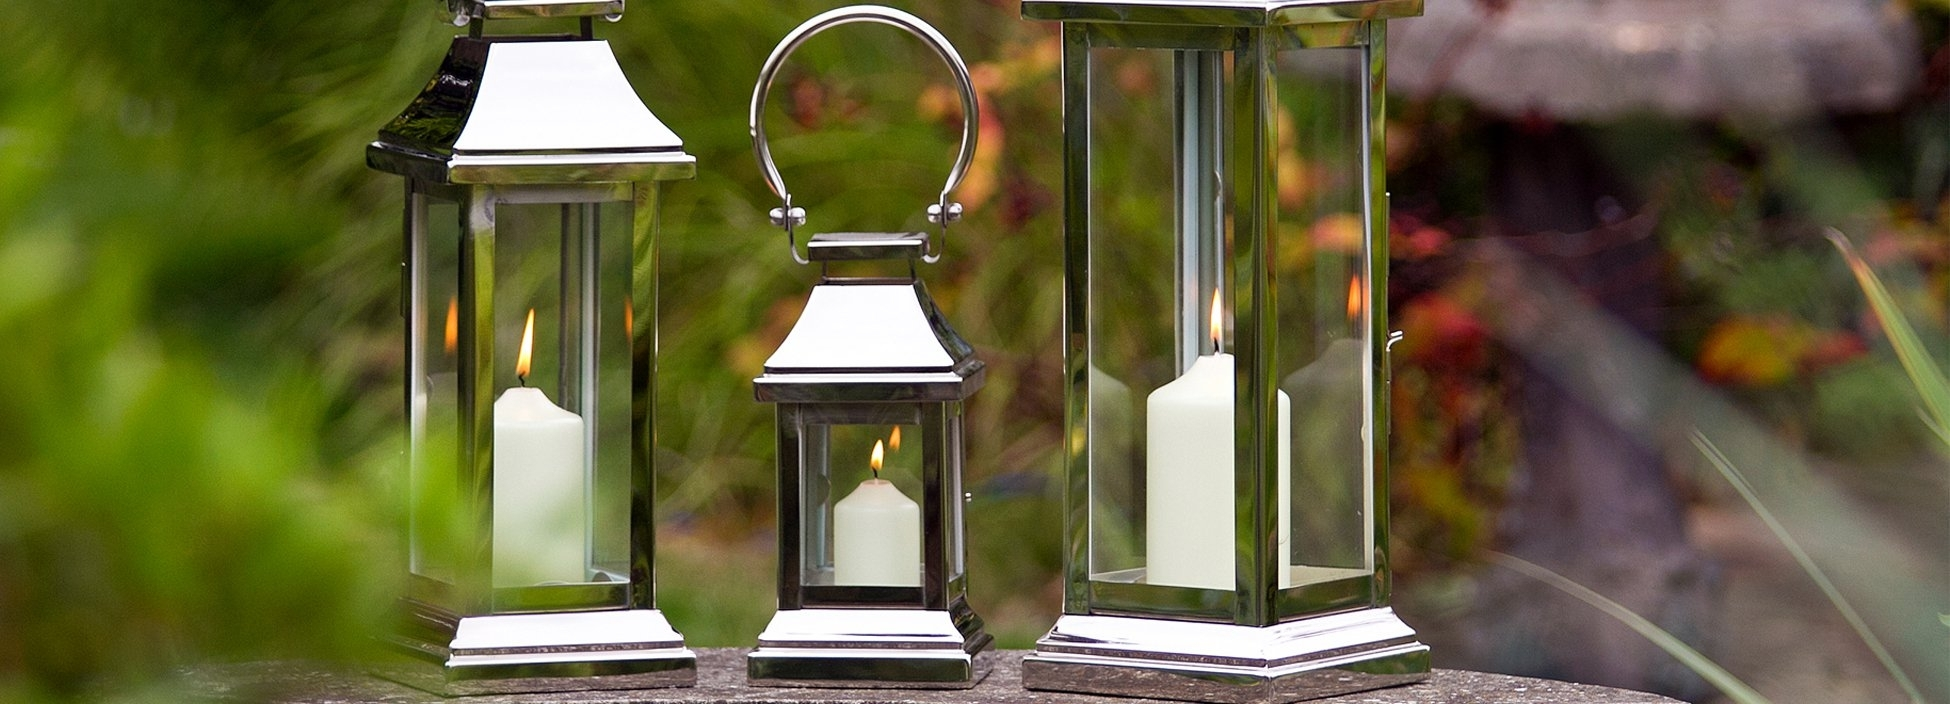 Indoor Candle Lanterns & Garden Lanterns | Culinary Concepts Regarding Outdoor Lanterns And Candles (View 11 of 20)